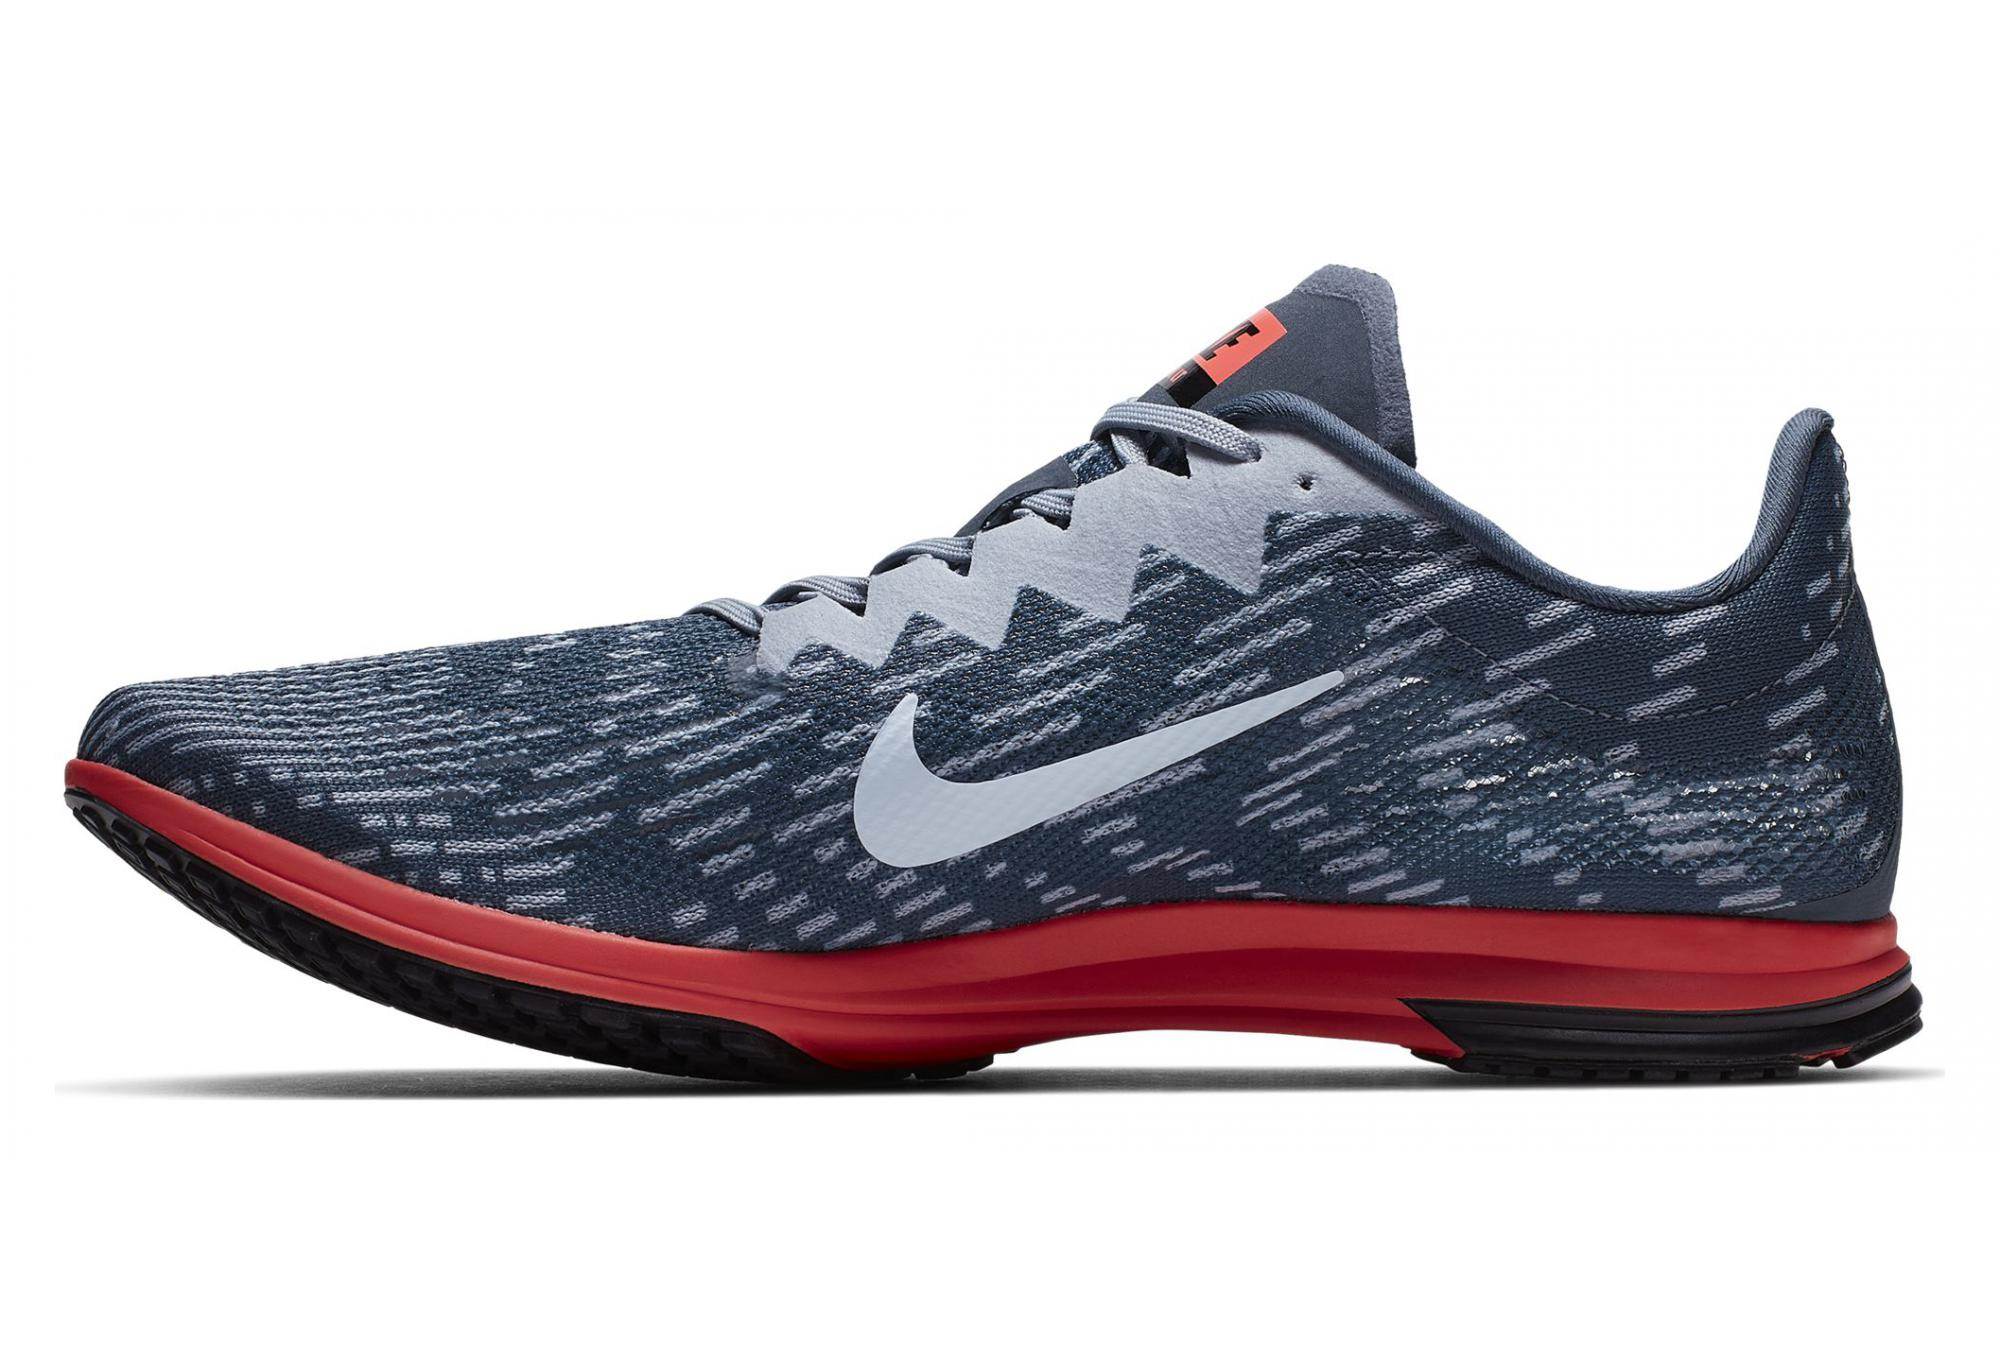 Nike Zoom Streak LT 4 Blue Red Unisex